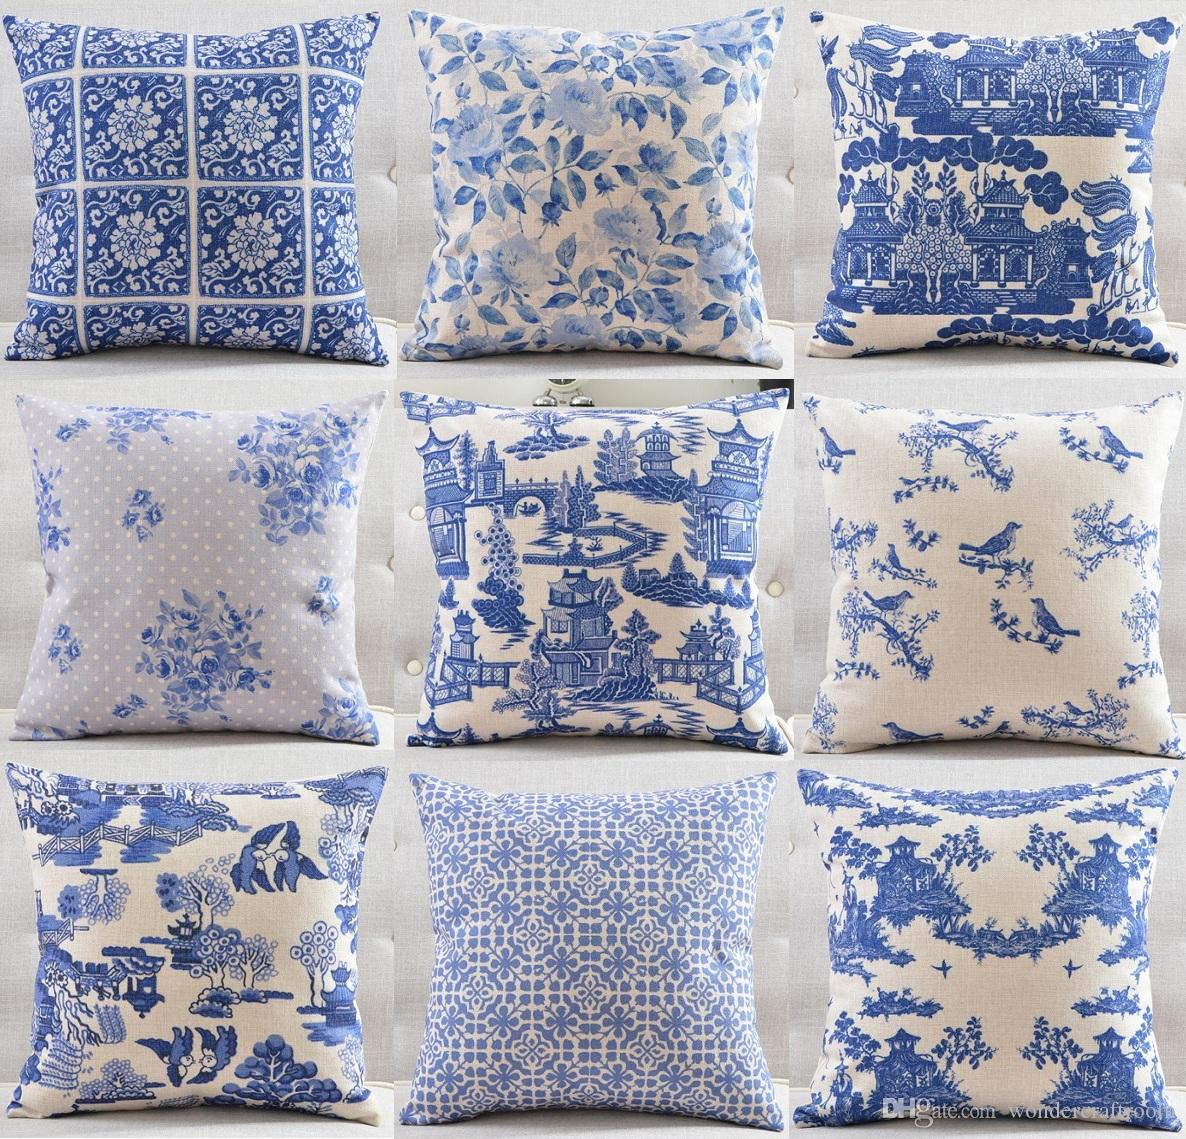 The Blue And White Porcelain Pattern Cushion Covers Chinese Ink Painting  Building Tree Flower Bird Cushion Cover Linen Cotton Pillow Case Outdoor  Patio ...